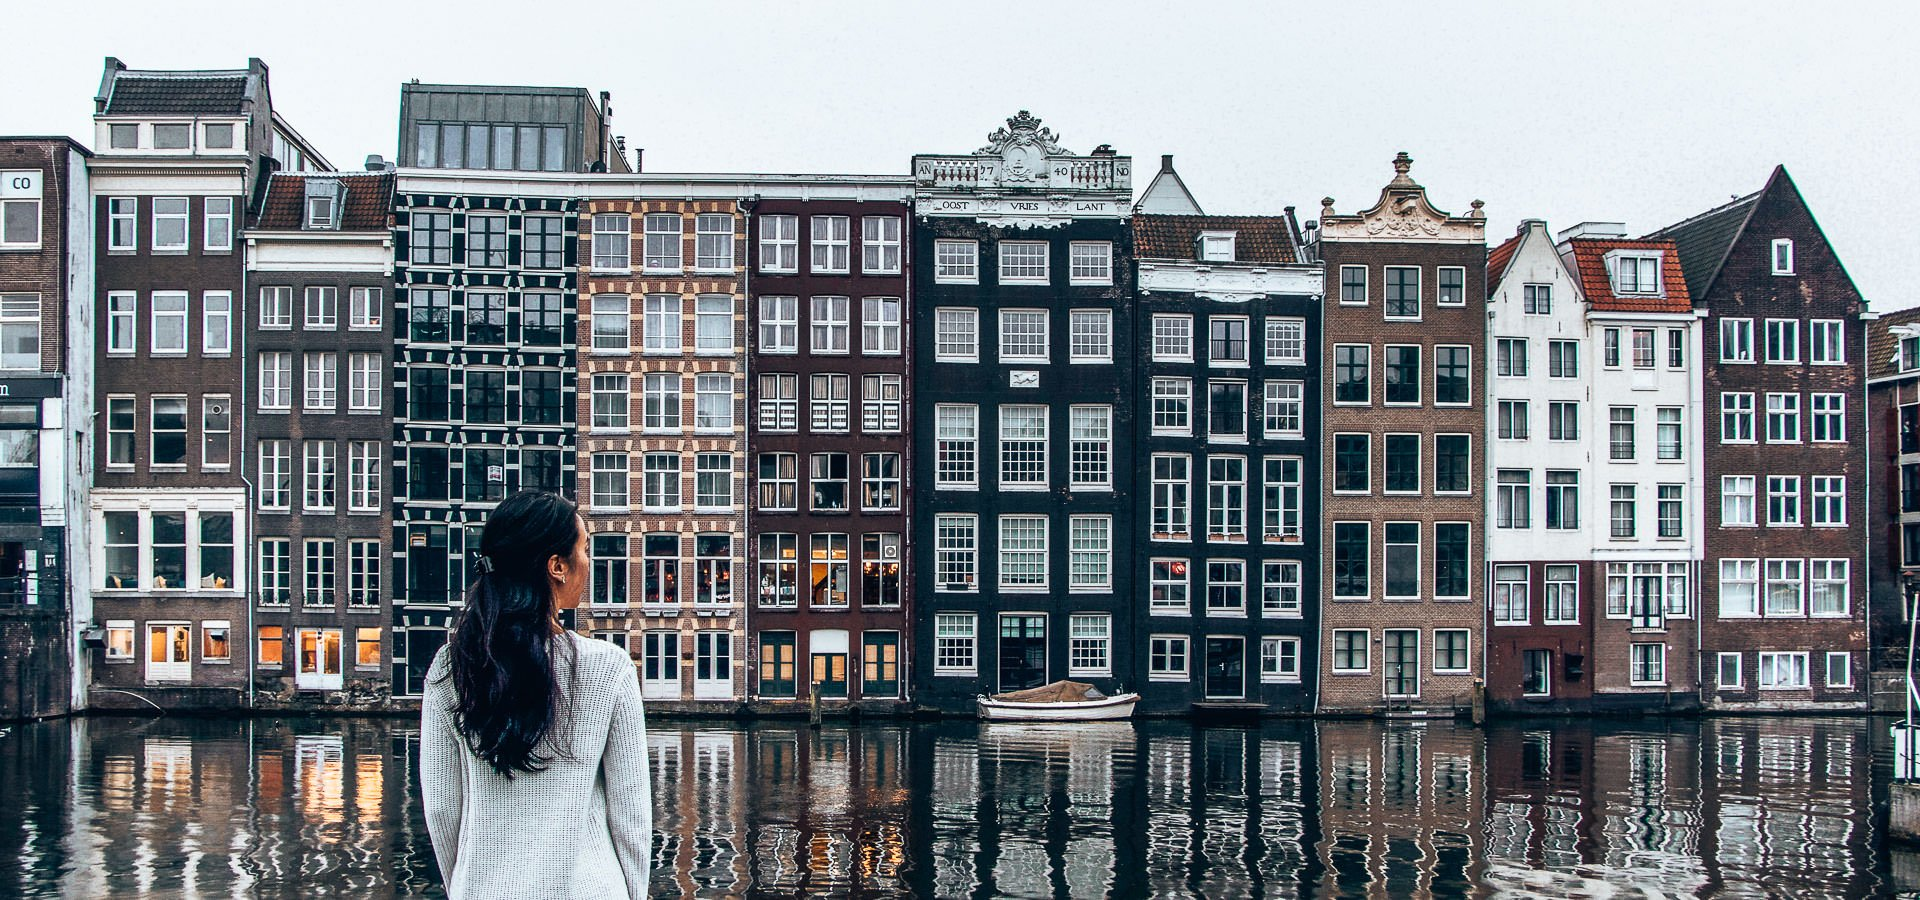 A Non Touristy Weekend Guide To Amsterdam | non touristy weekend guide amsterdam 4